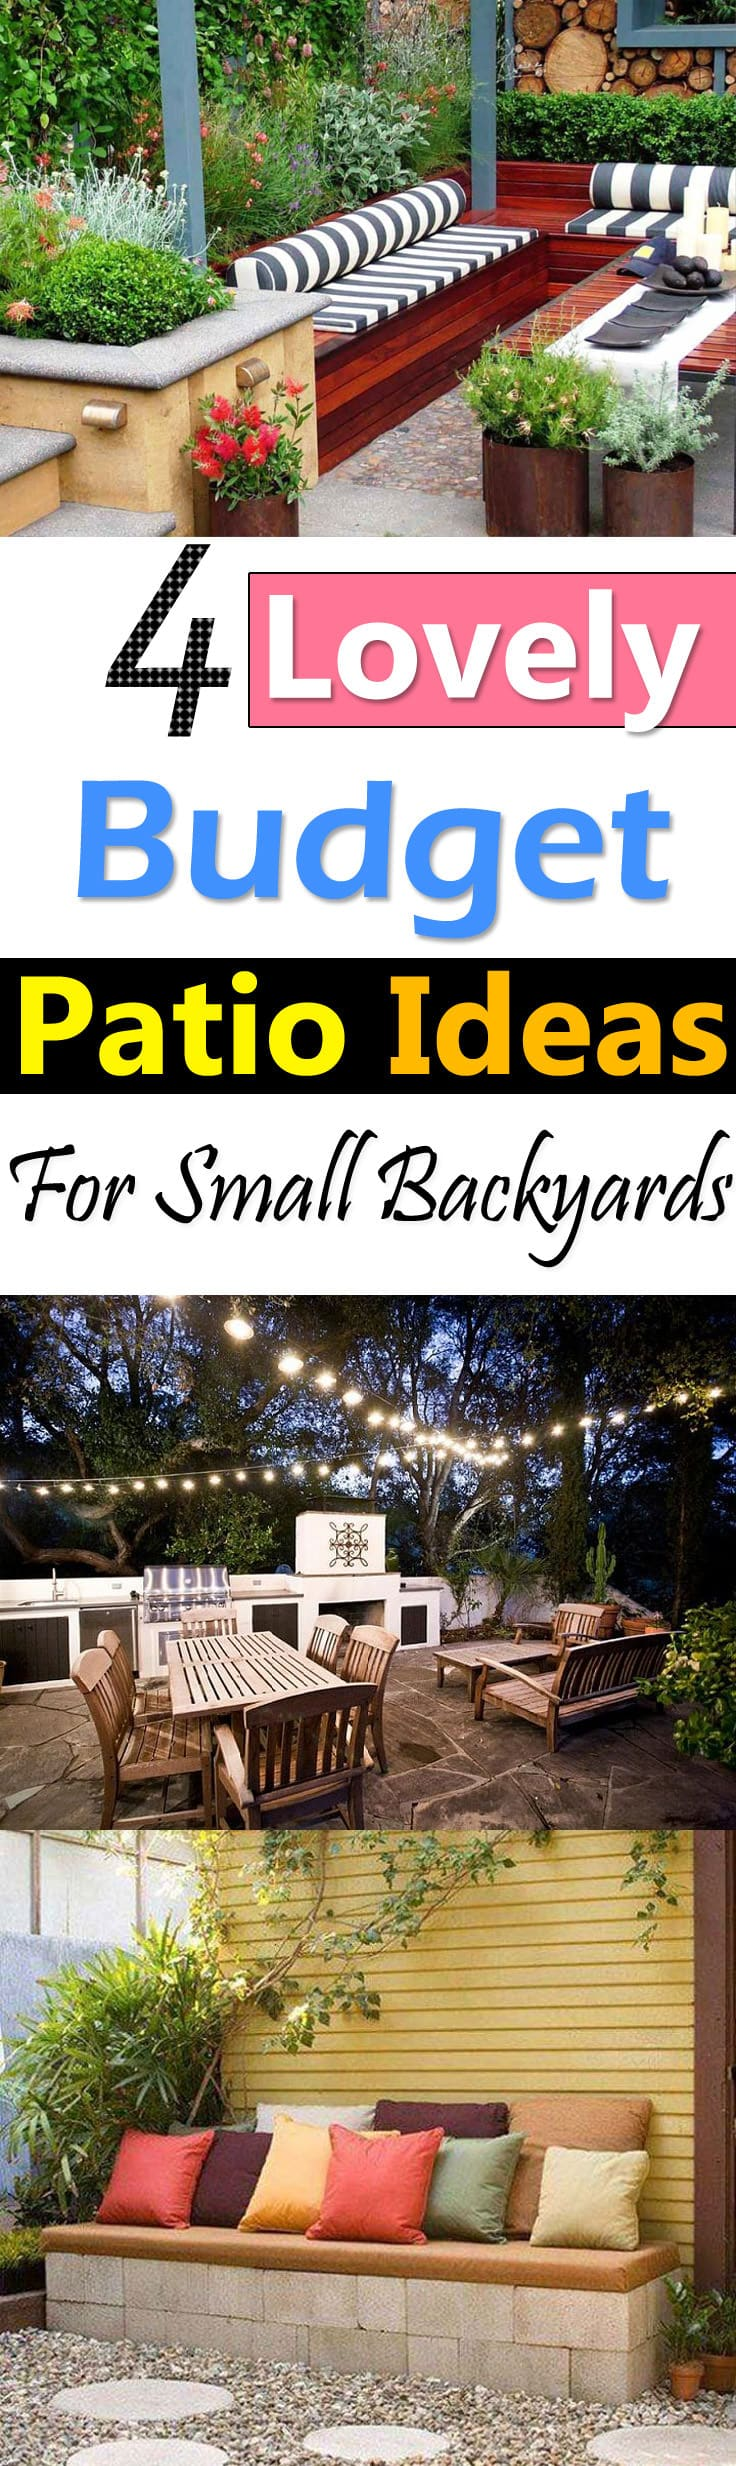 4 Lovely Budget Patio Ideas For Small Backyards | Balcony ... on Backyard Patios On A Budget id=14964